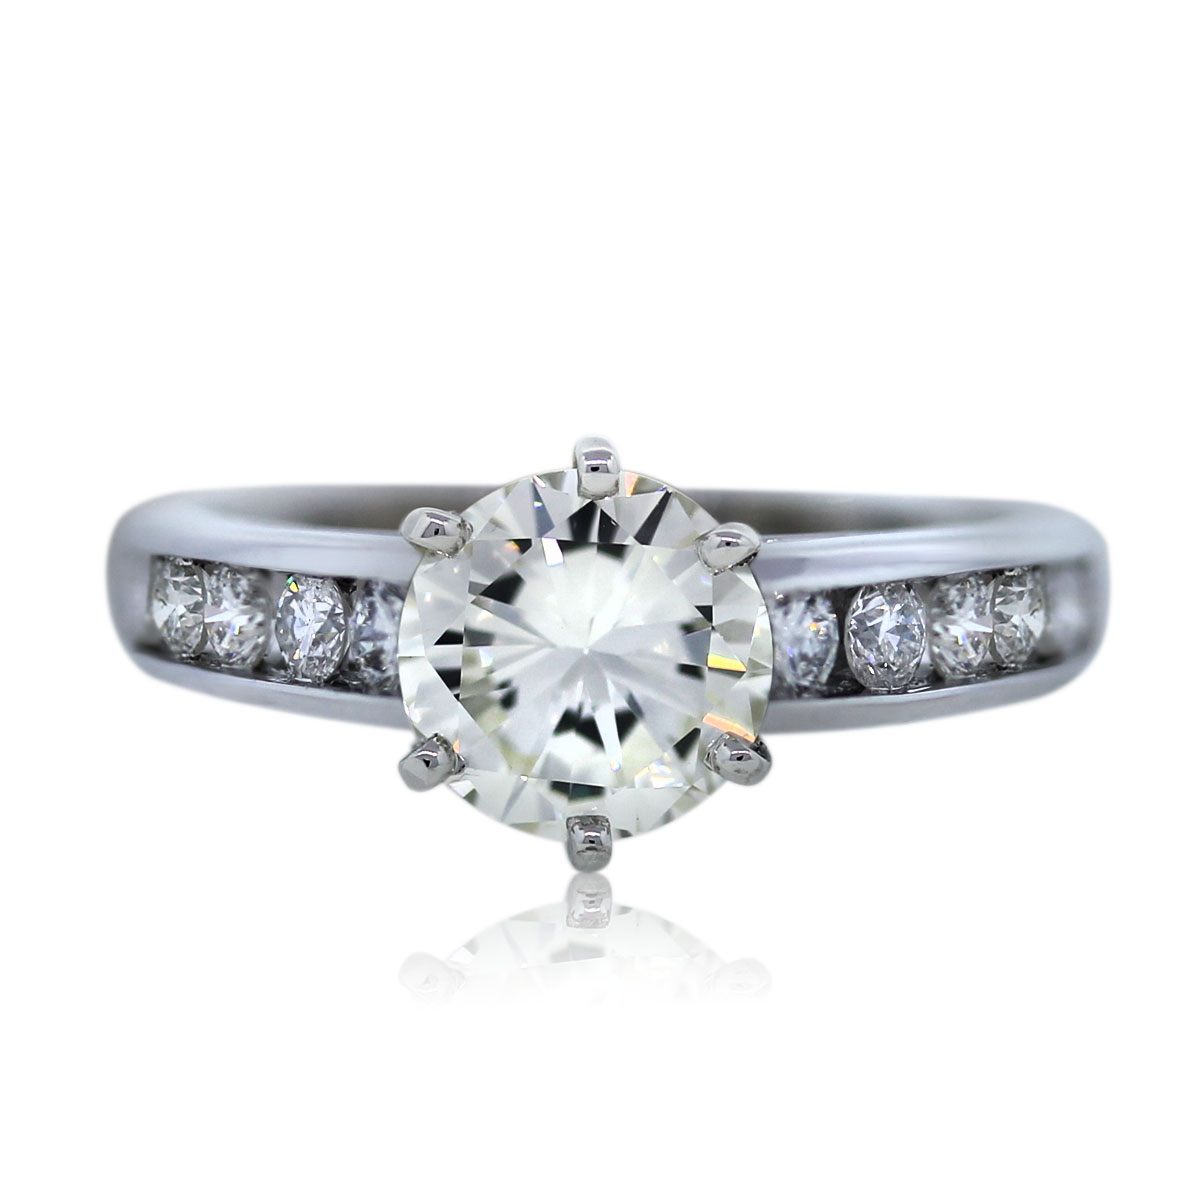 1ct Round Diamond Engagement Ring